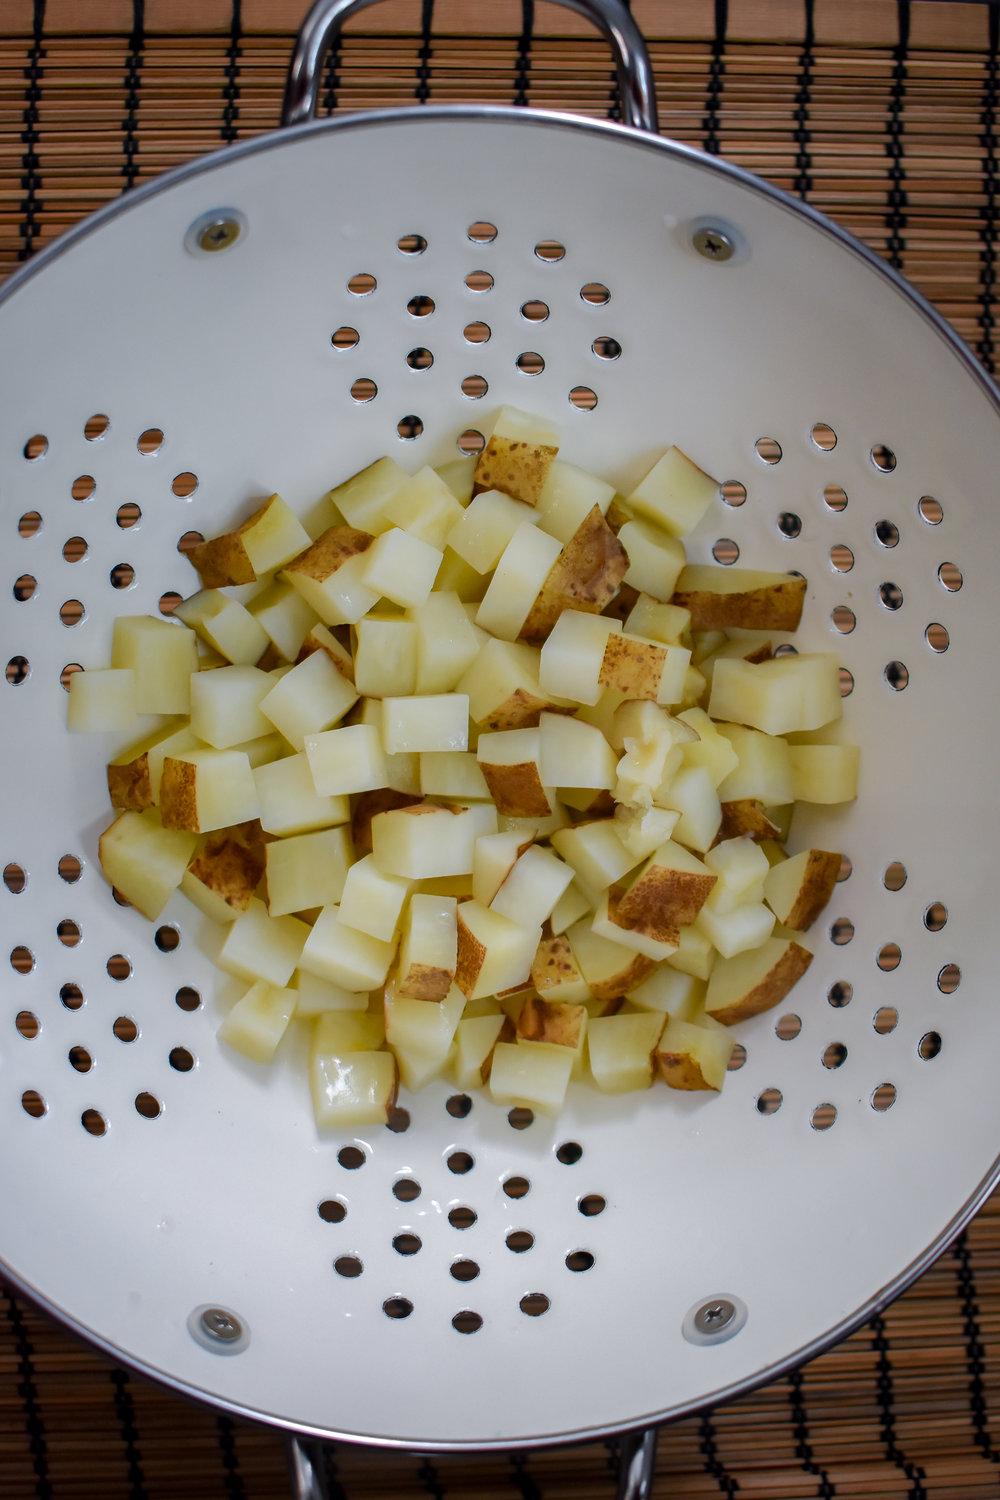 1. To start, add potatoes to a large microwave-safe bowl with 2 tbl of water. Microwave for 6 minutes to parboil potatoes.